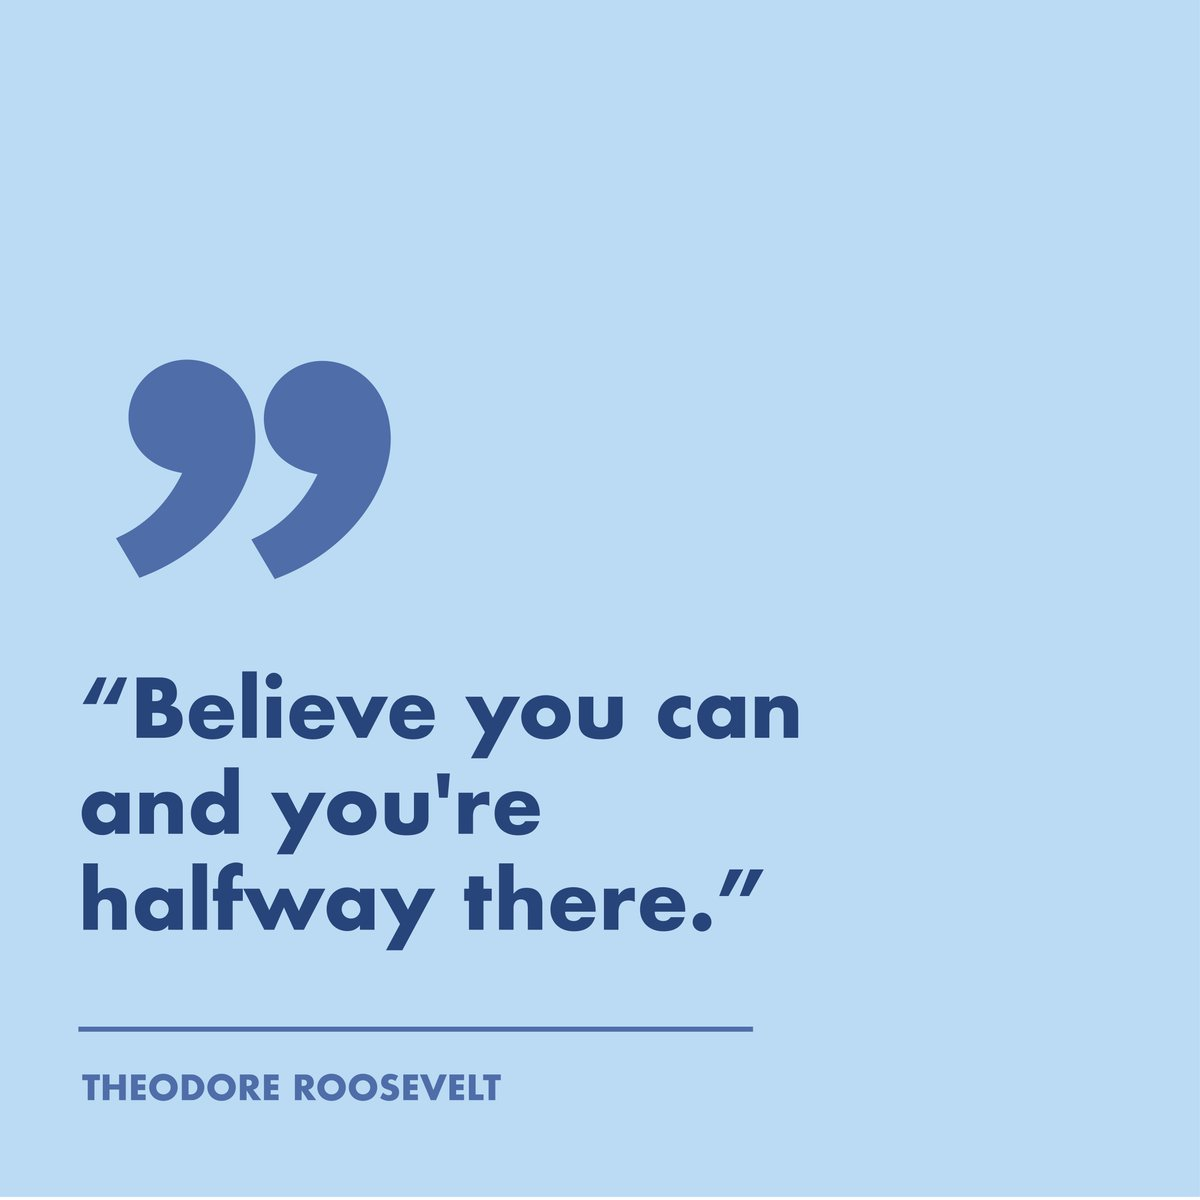 ⚡ There is power in your thoughts! First, see yourself achieving your goals. Then go out and achieve them! #MondayMotivation